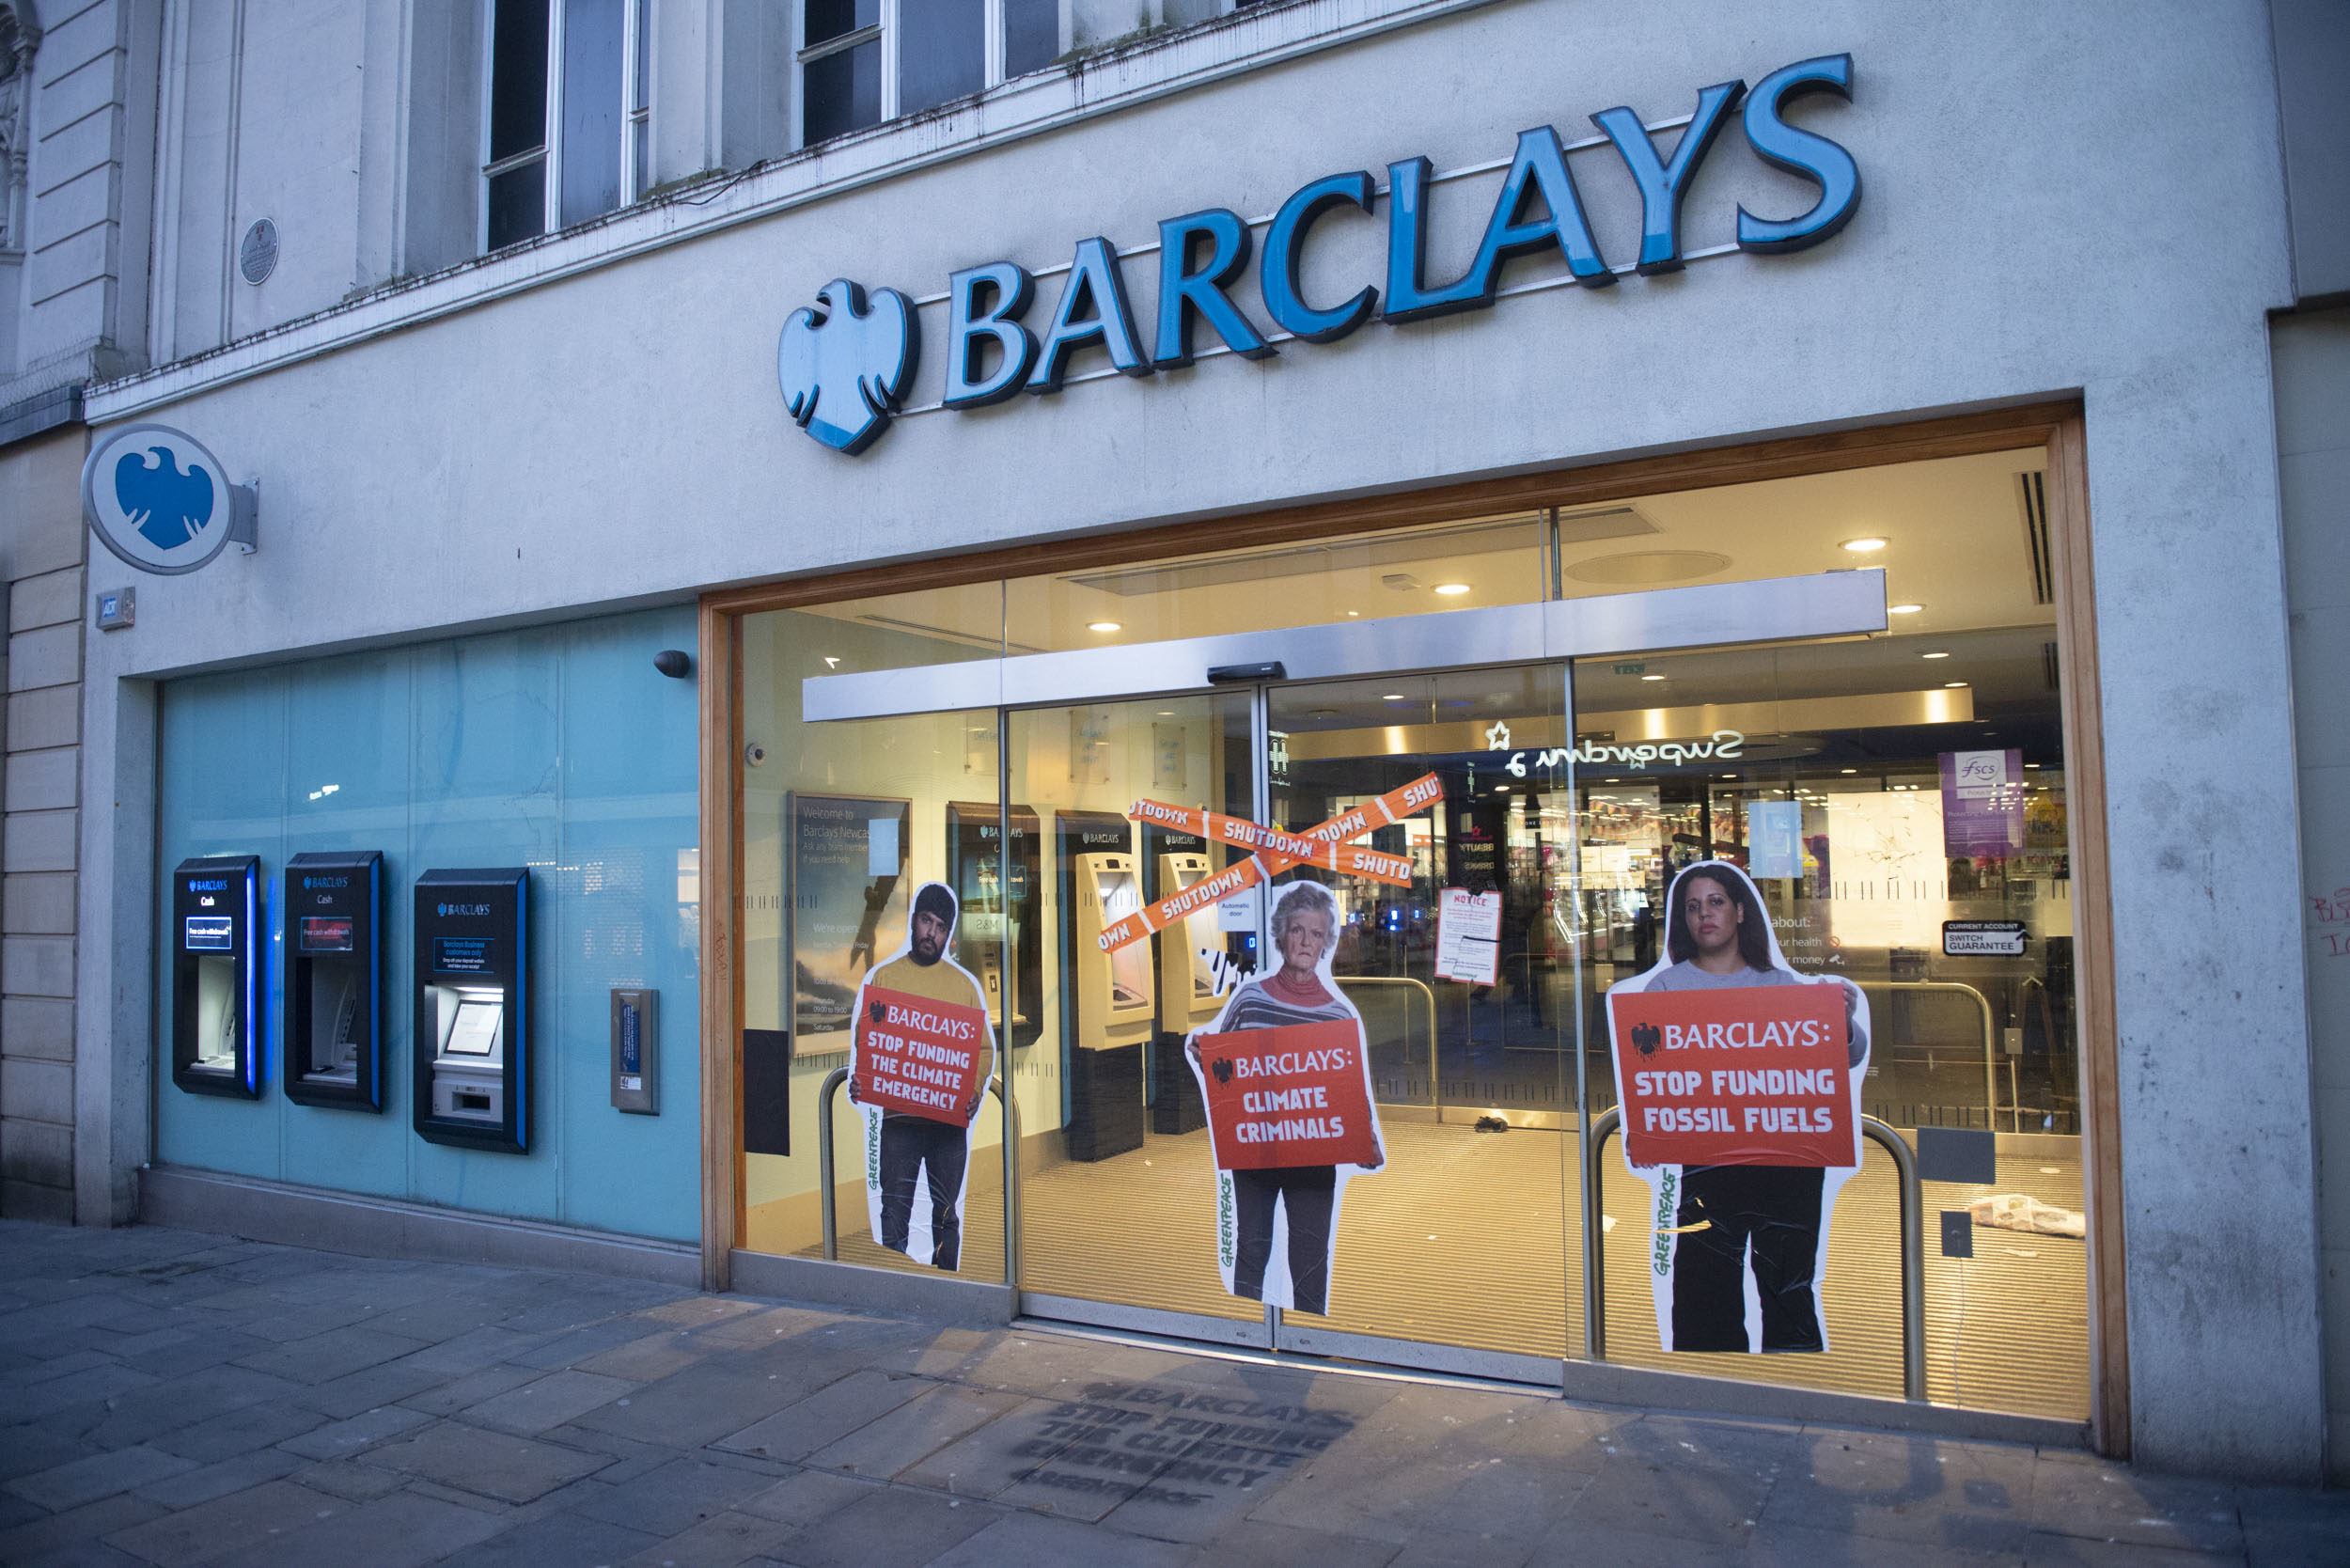 Greenpeace activists 'shut down' more than 95 Barclays branches in protest